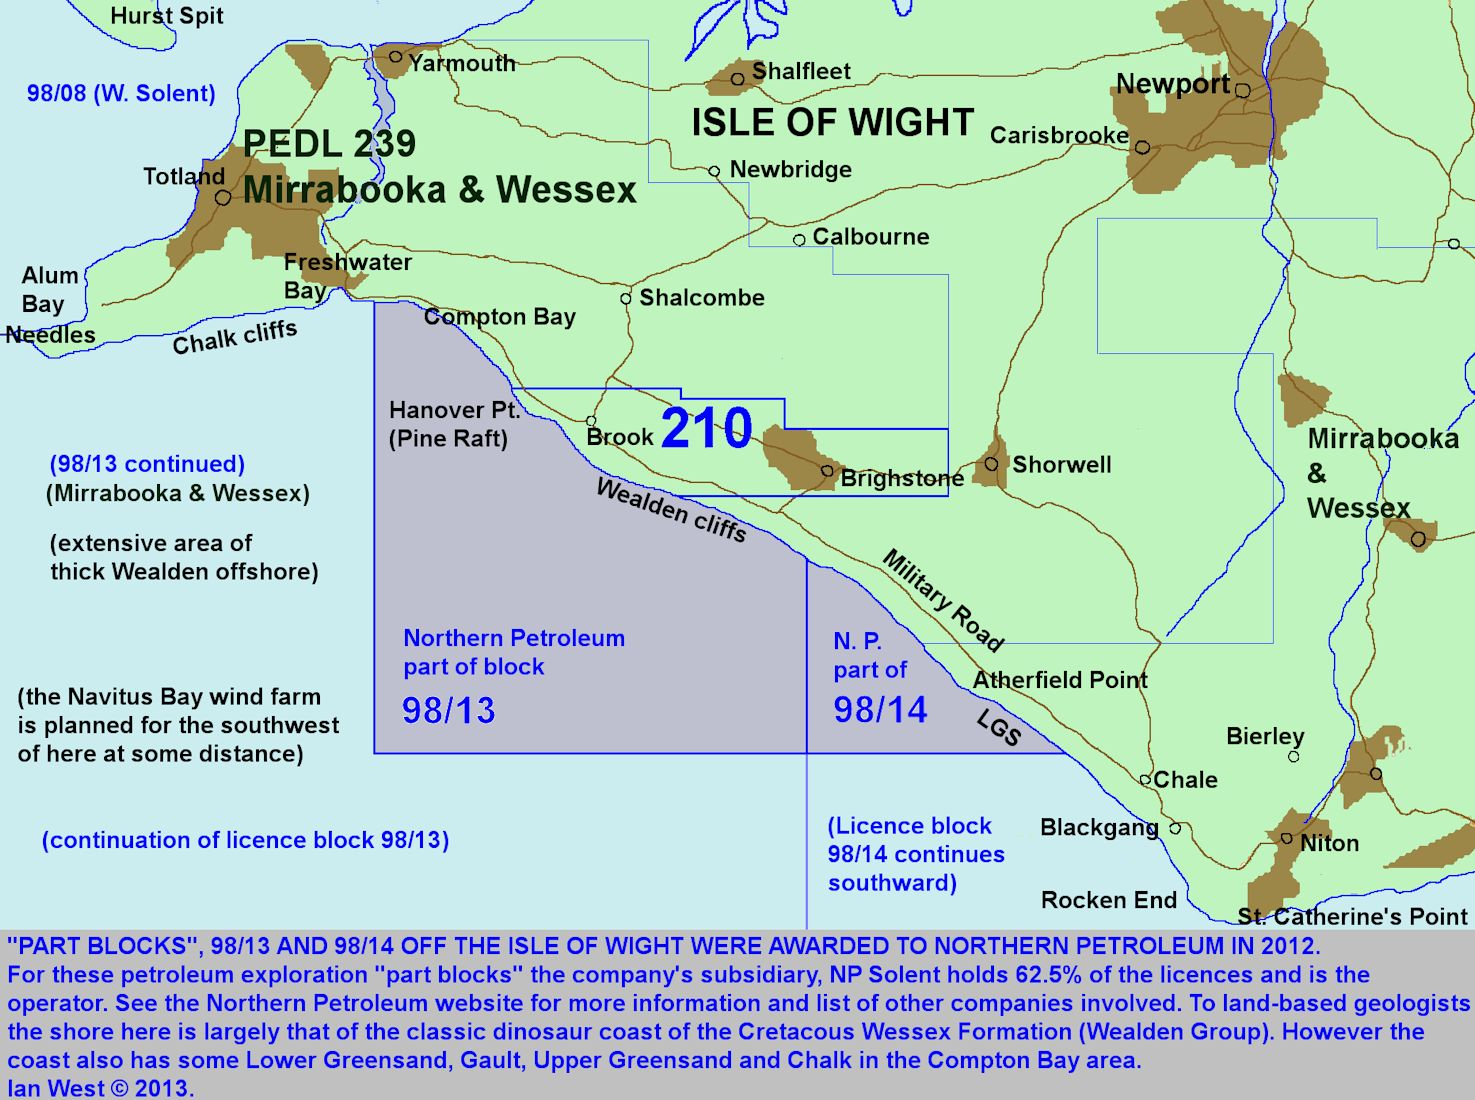 Licence blocks of Northern Petroleum, offshore to the southwest of the Isle of Wight